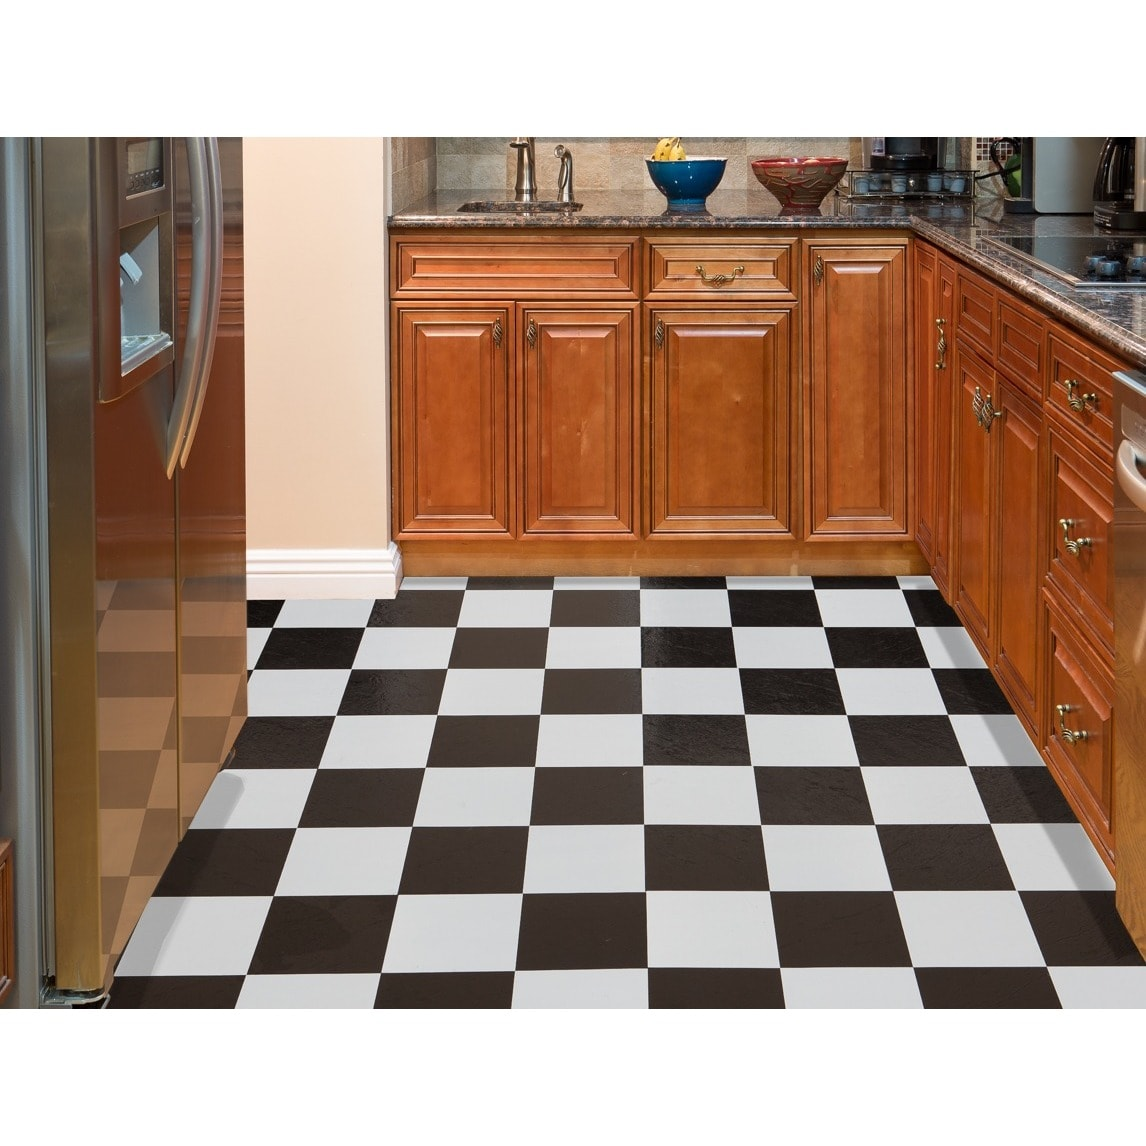 Achim nexus black and white self adhesive vinyl floor tile set of achim nexus black and white self adhesive vinyl floor tile set of 20 free shipping on orders over 45 overstock 15774758 dailygadgetfo Images